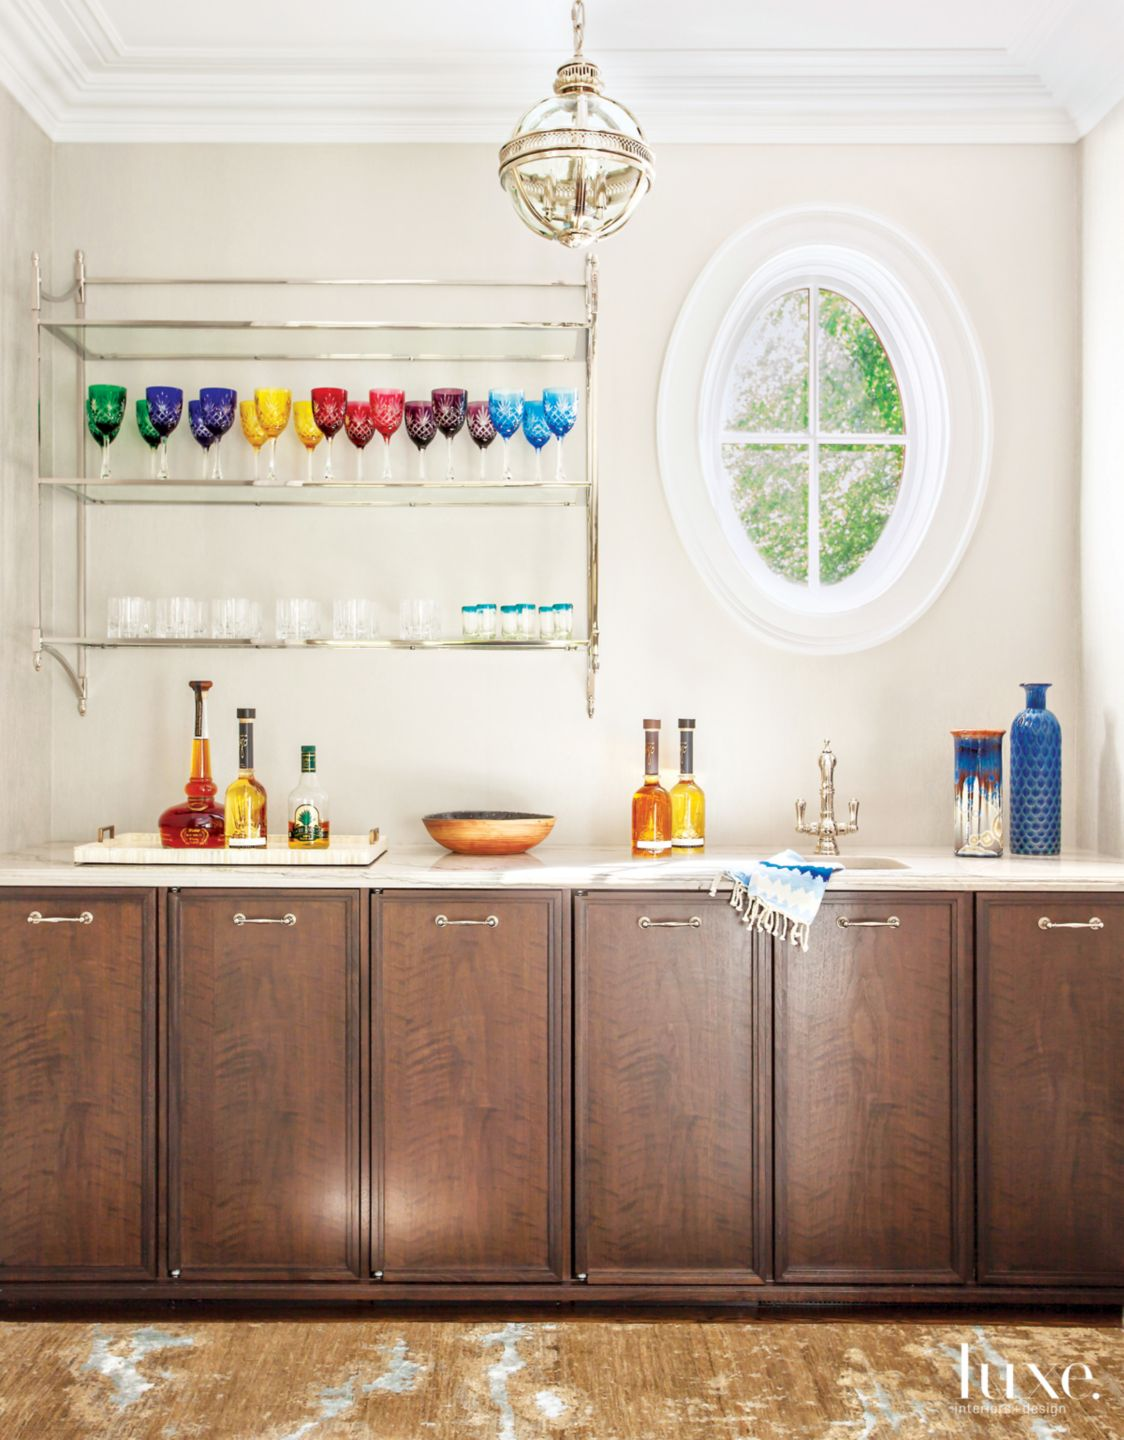 Traditional Neutral Bar Area with Colorful Glassware